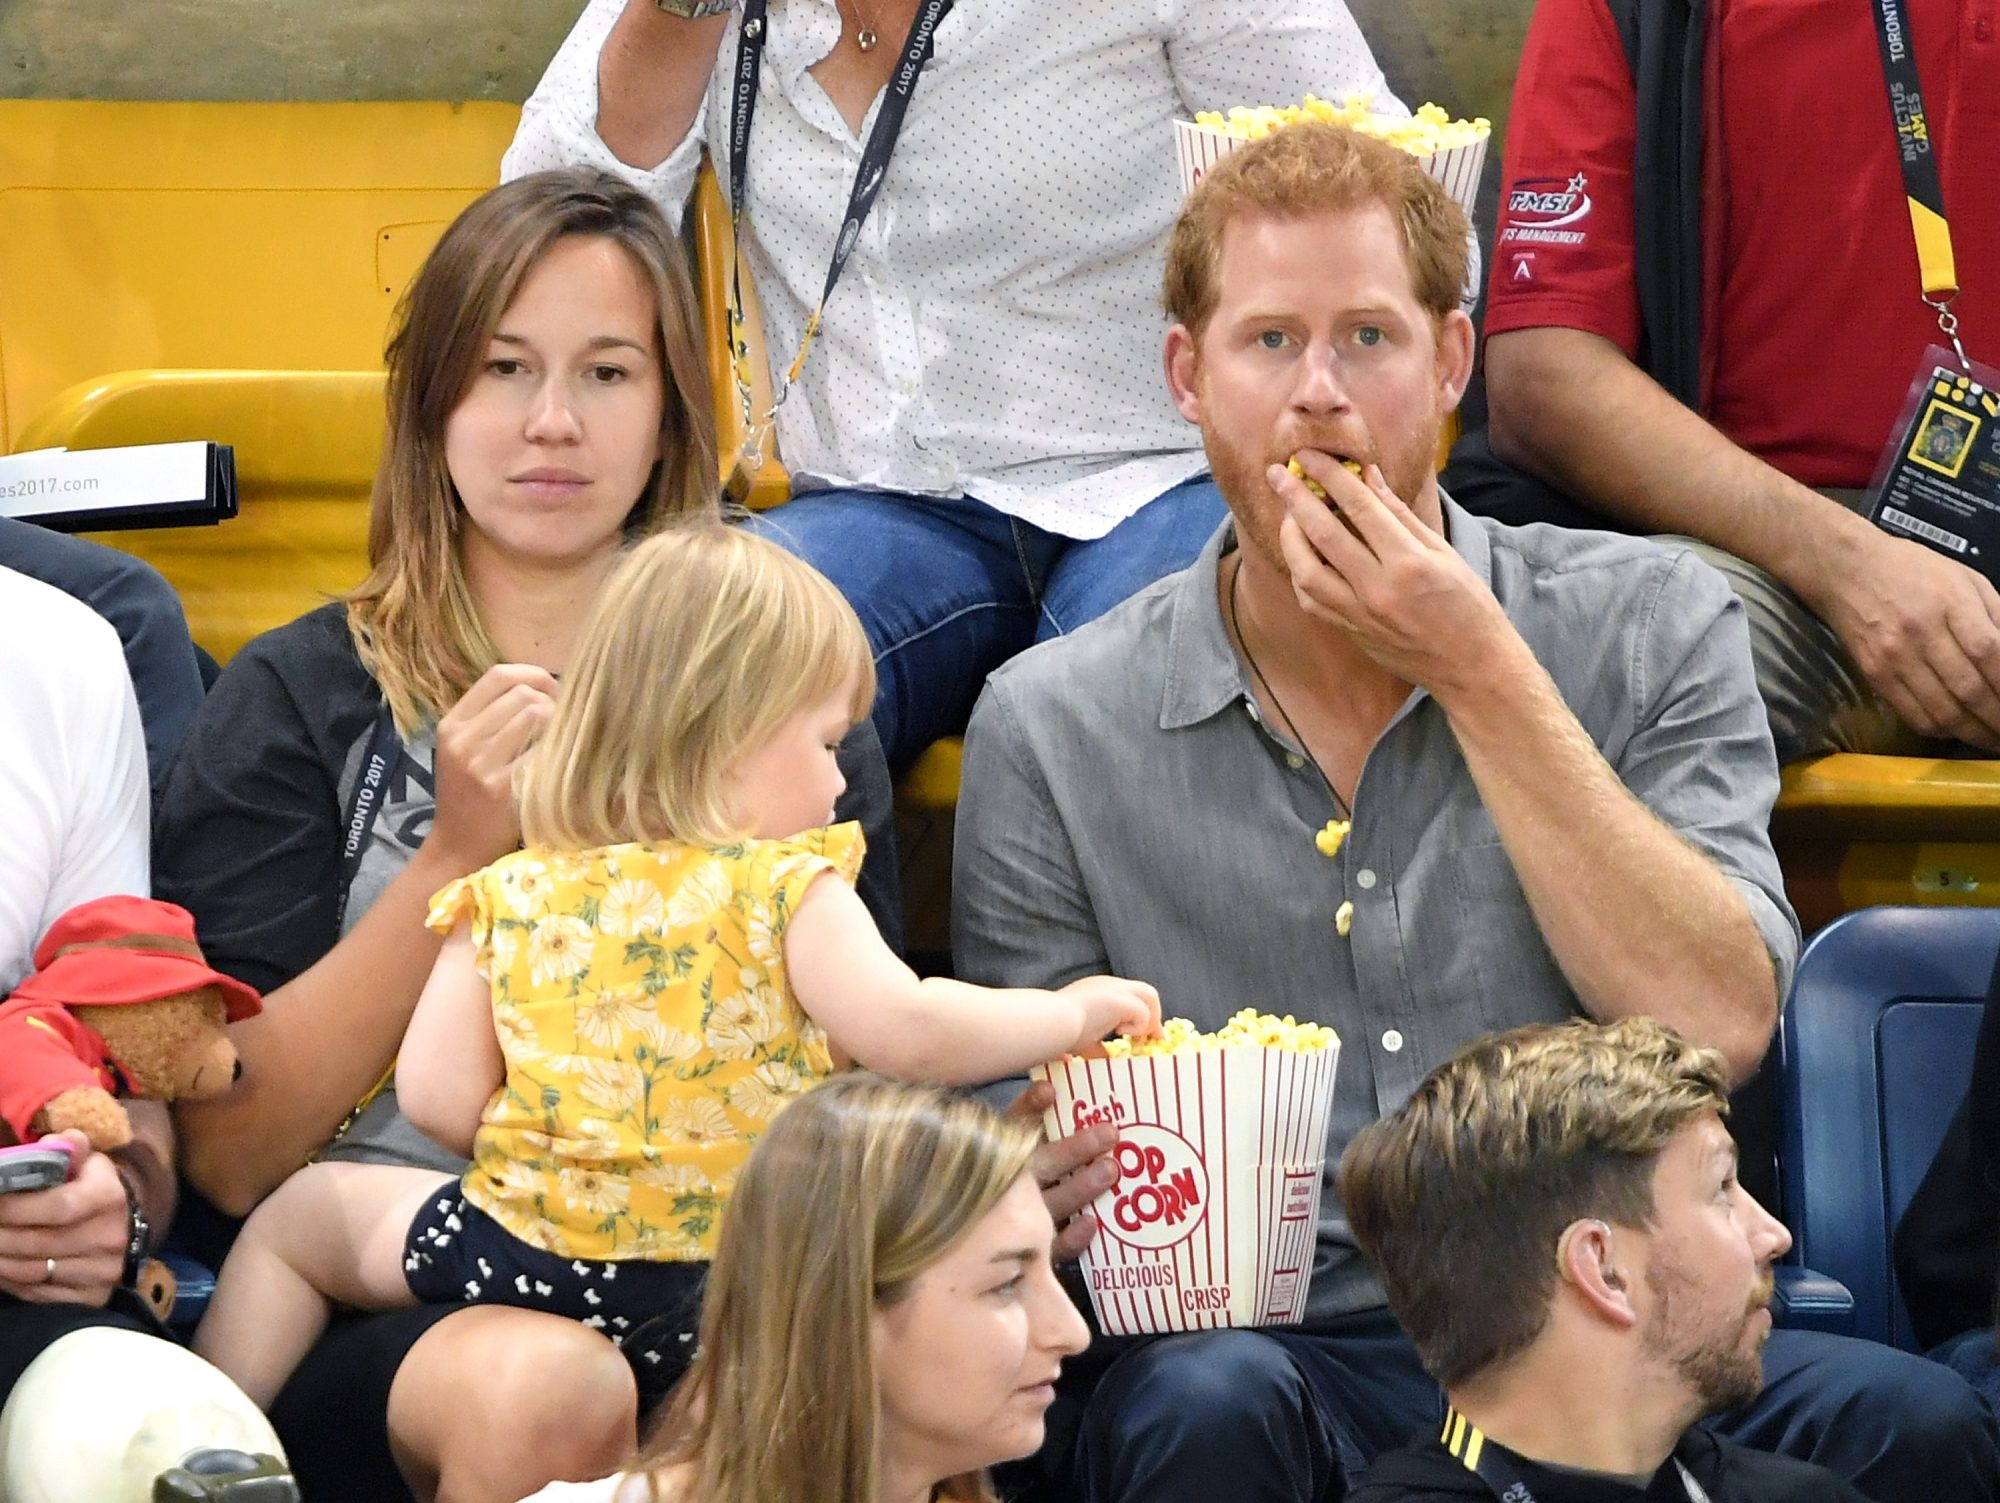 Image of Prince Harry with popcorn-stealing toddler